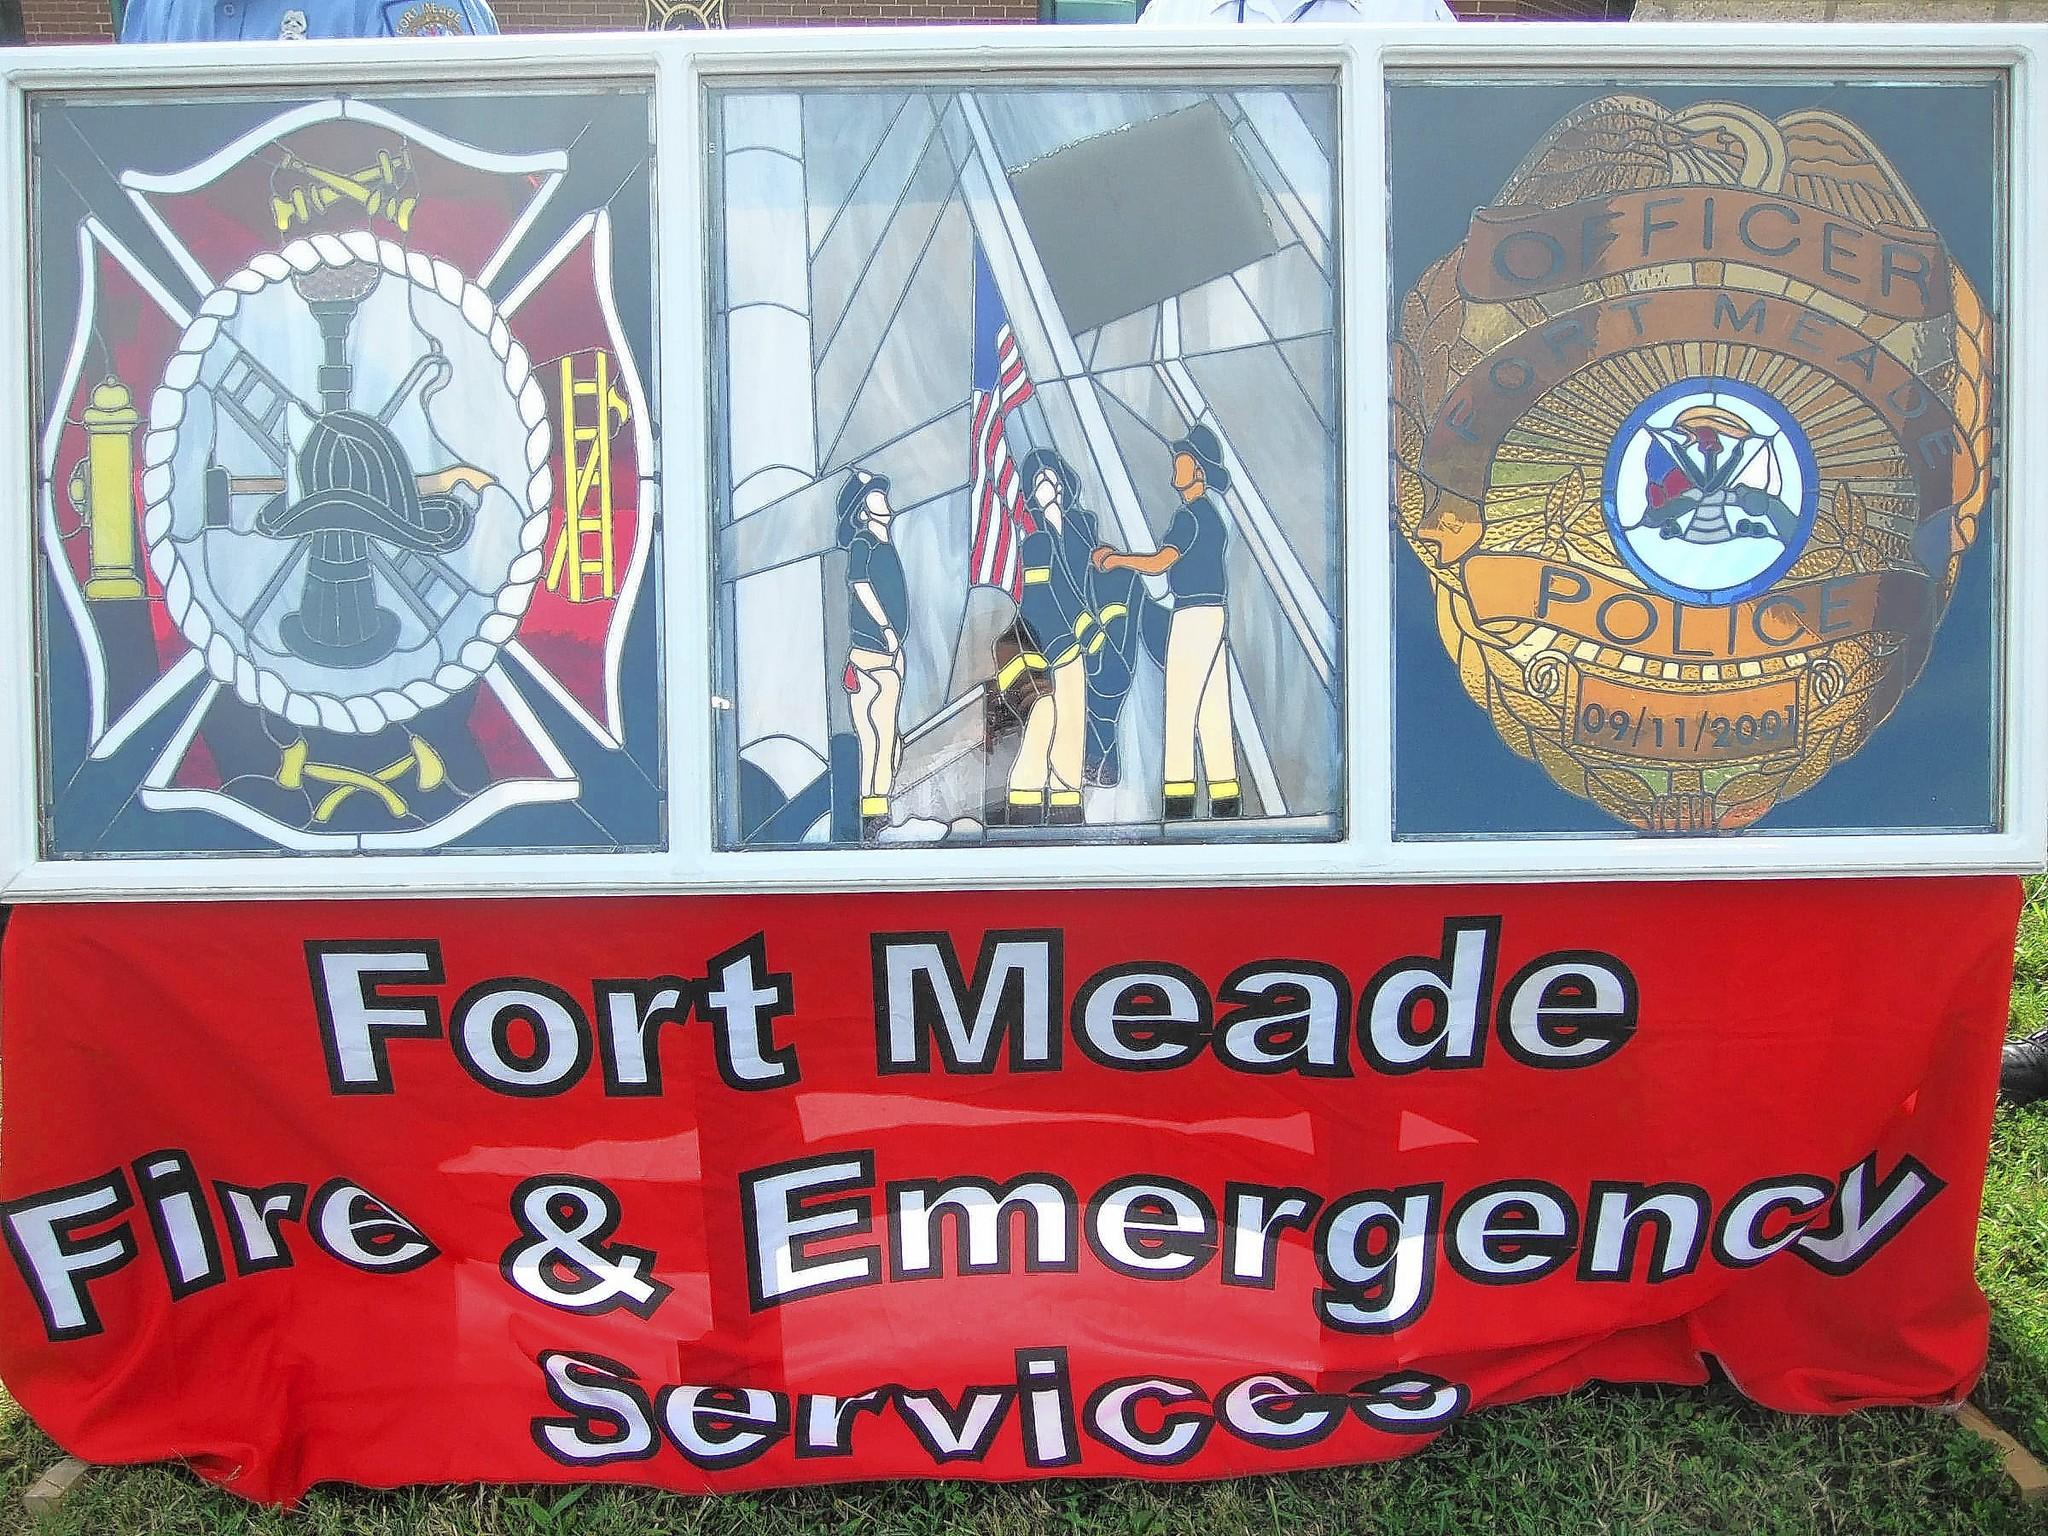 At a ceremony on Sept. 11 at Fort Meade, members of the base's Directorate of Emergency Services were presented with a stained glass image honoring first responders. The work featured a piece of metal from the World Trade Center (center panel, to the right of the flag) that was given to the department by a police officer who responded to the attacks on 9/11